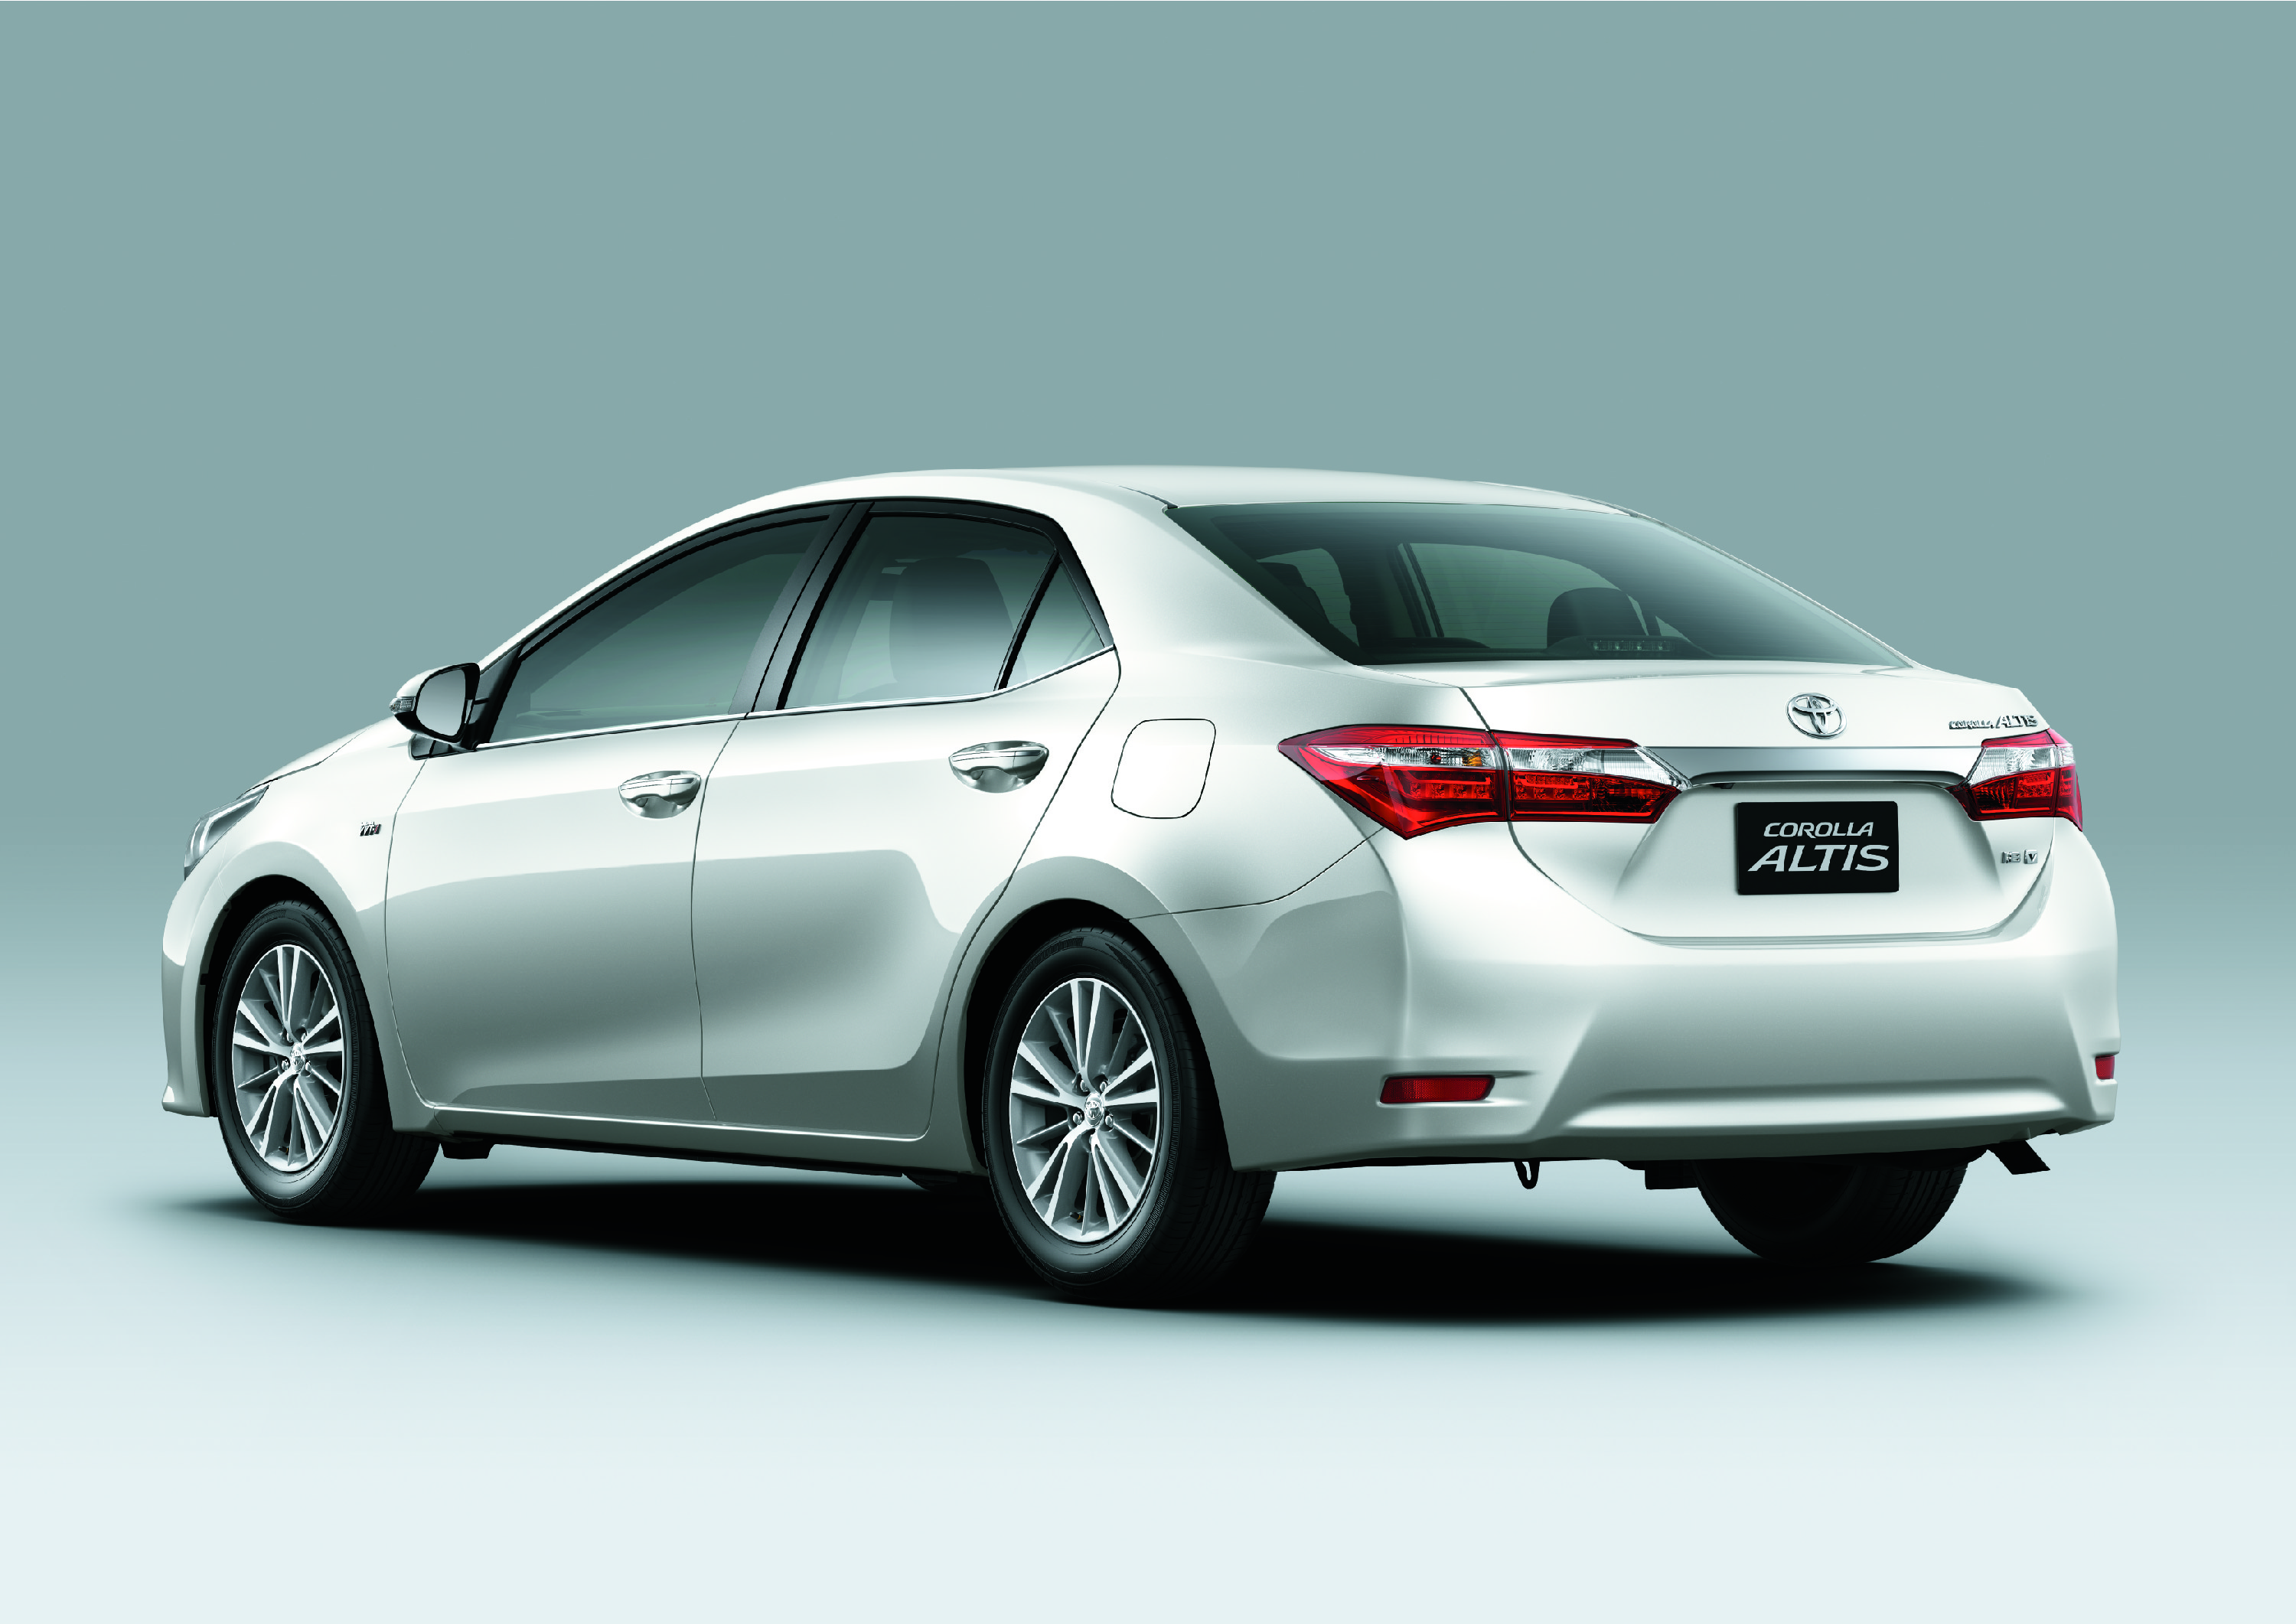 new corolla altis launch date in india grand avanza veloz 1.3 launched the all toyota a legend